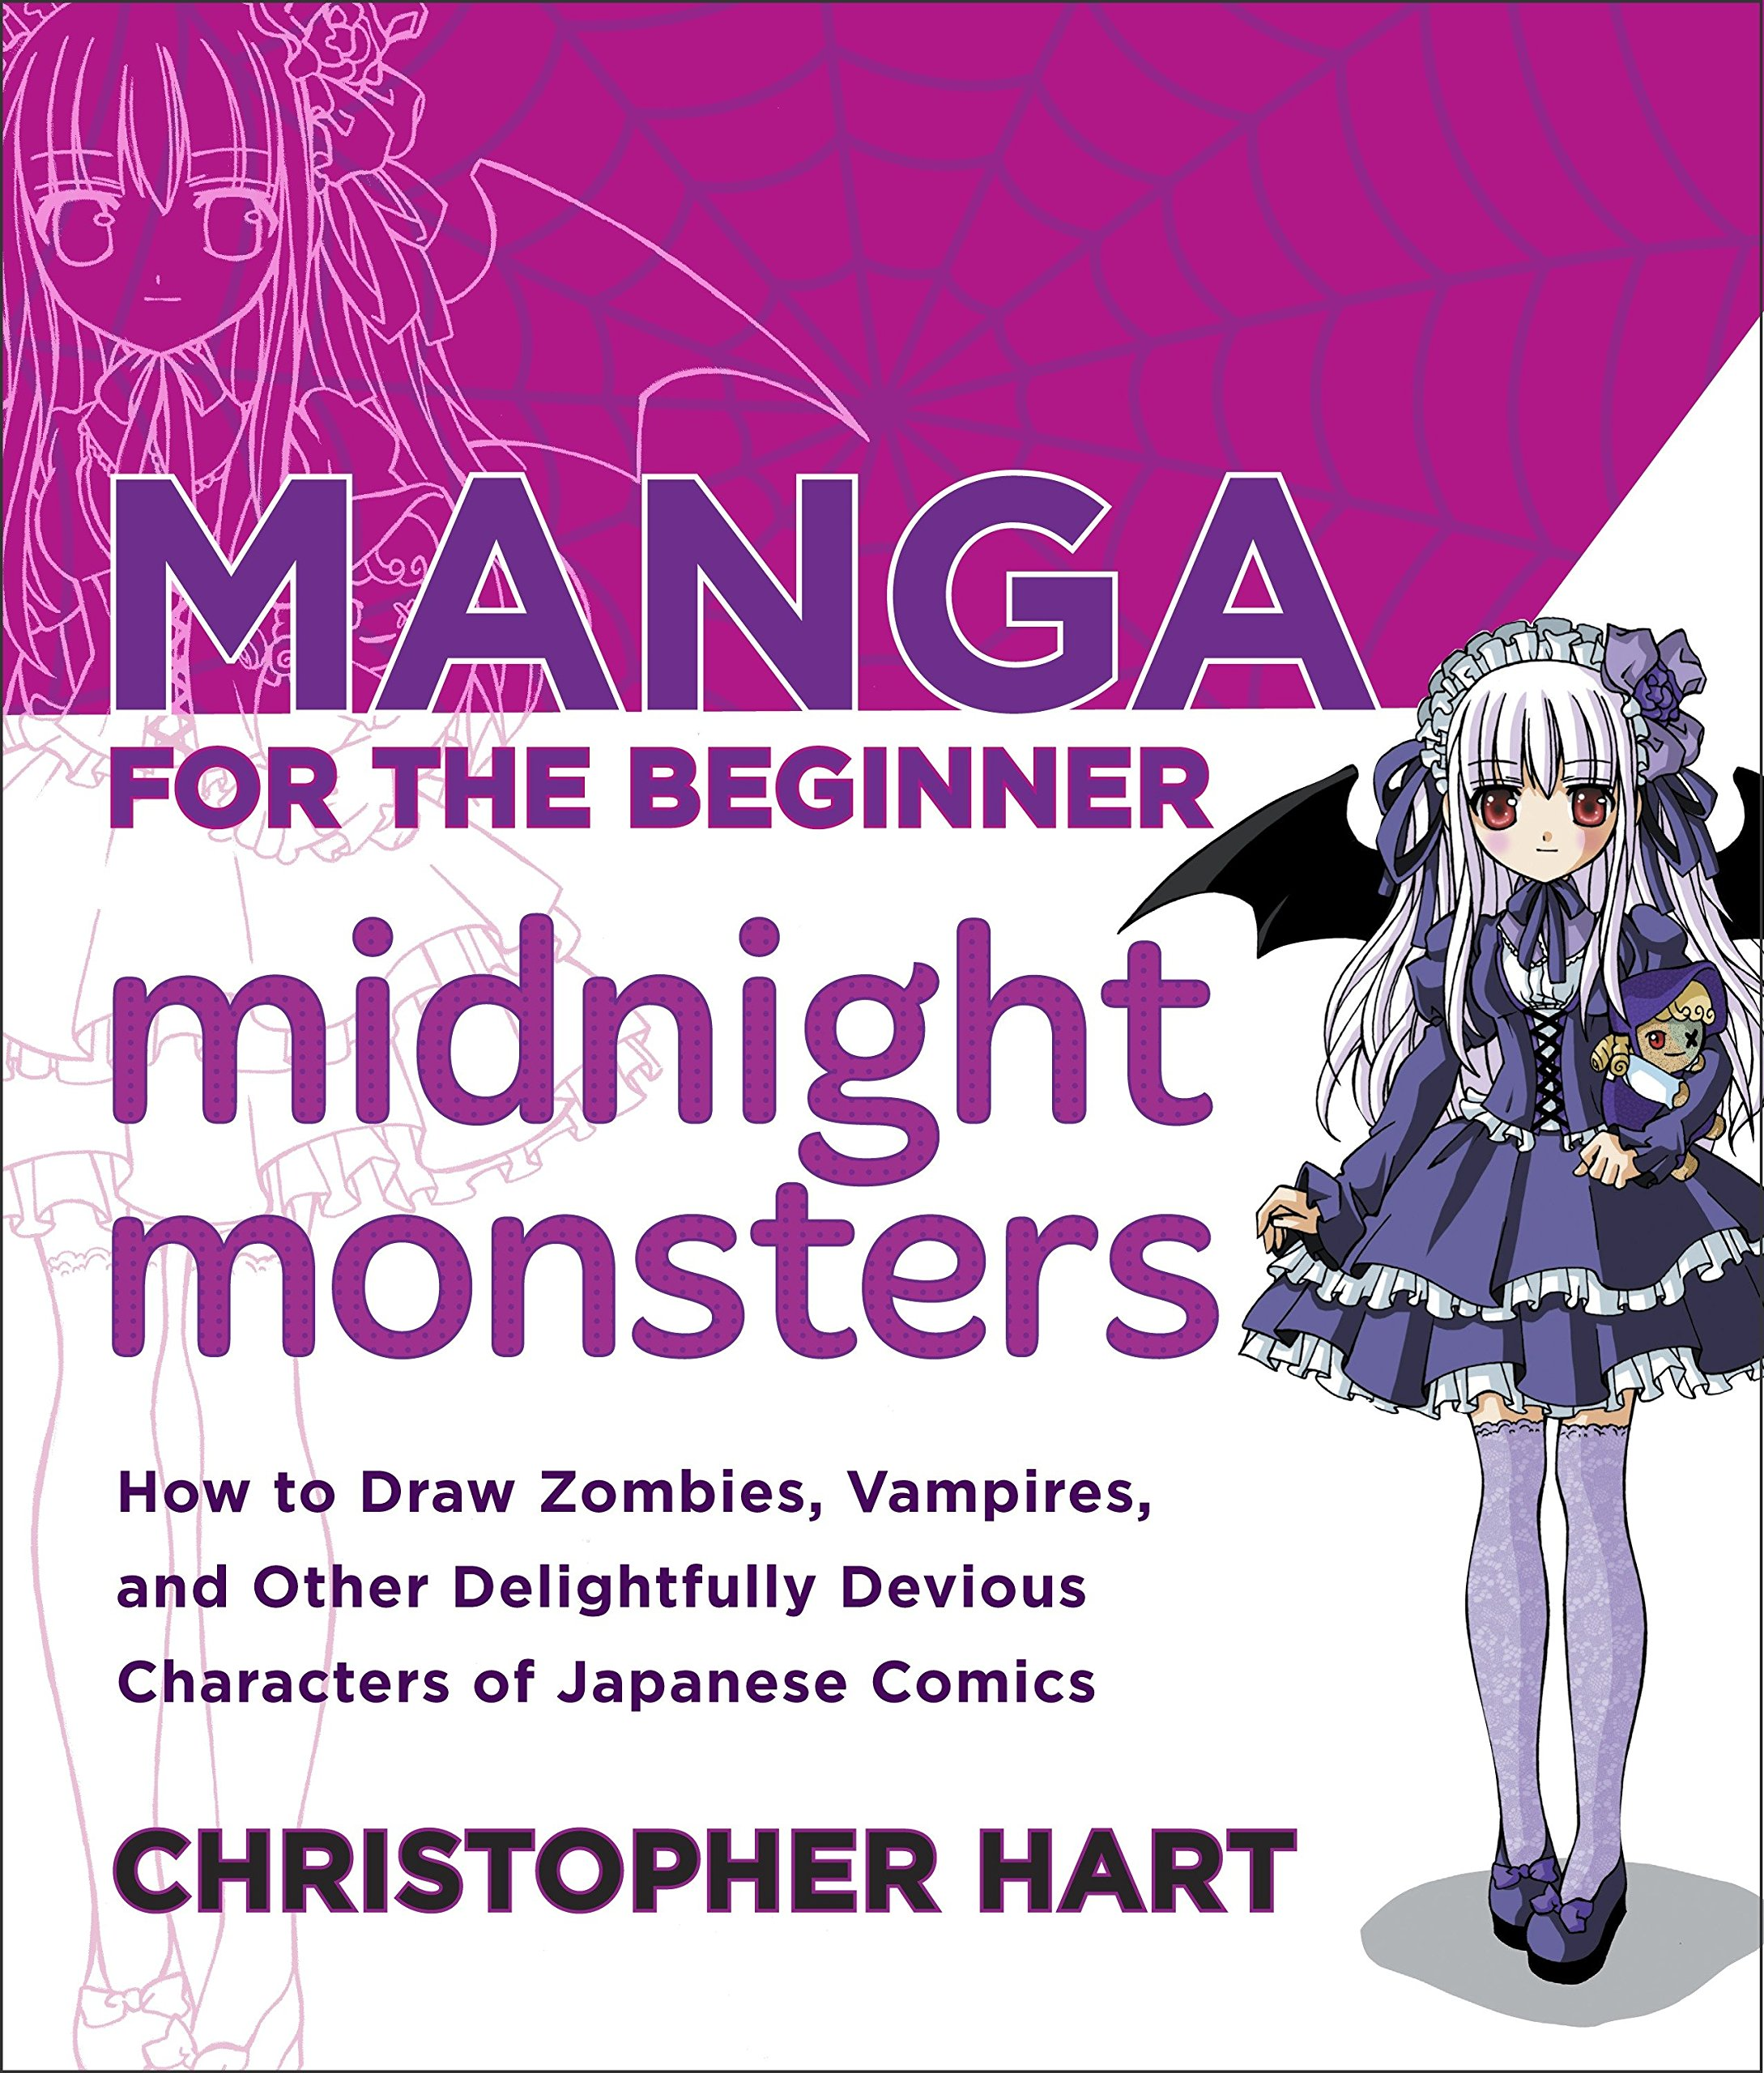 Manga for the Beginner Midnight Monsters: How to Draw Zombies, Vampires, and Other Delightfully Devious Characters of Japanese Comics (Christopher Hart's Manga for the Beginner)